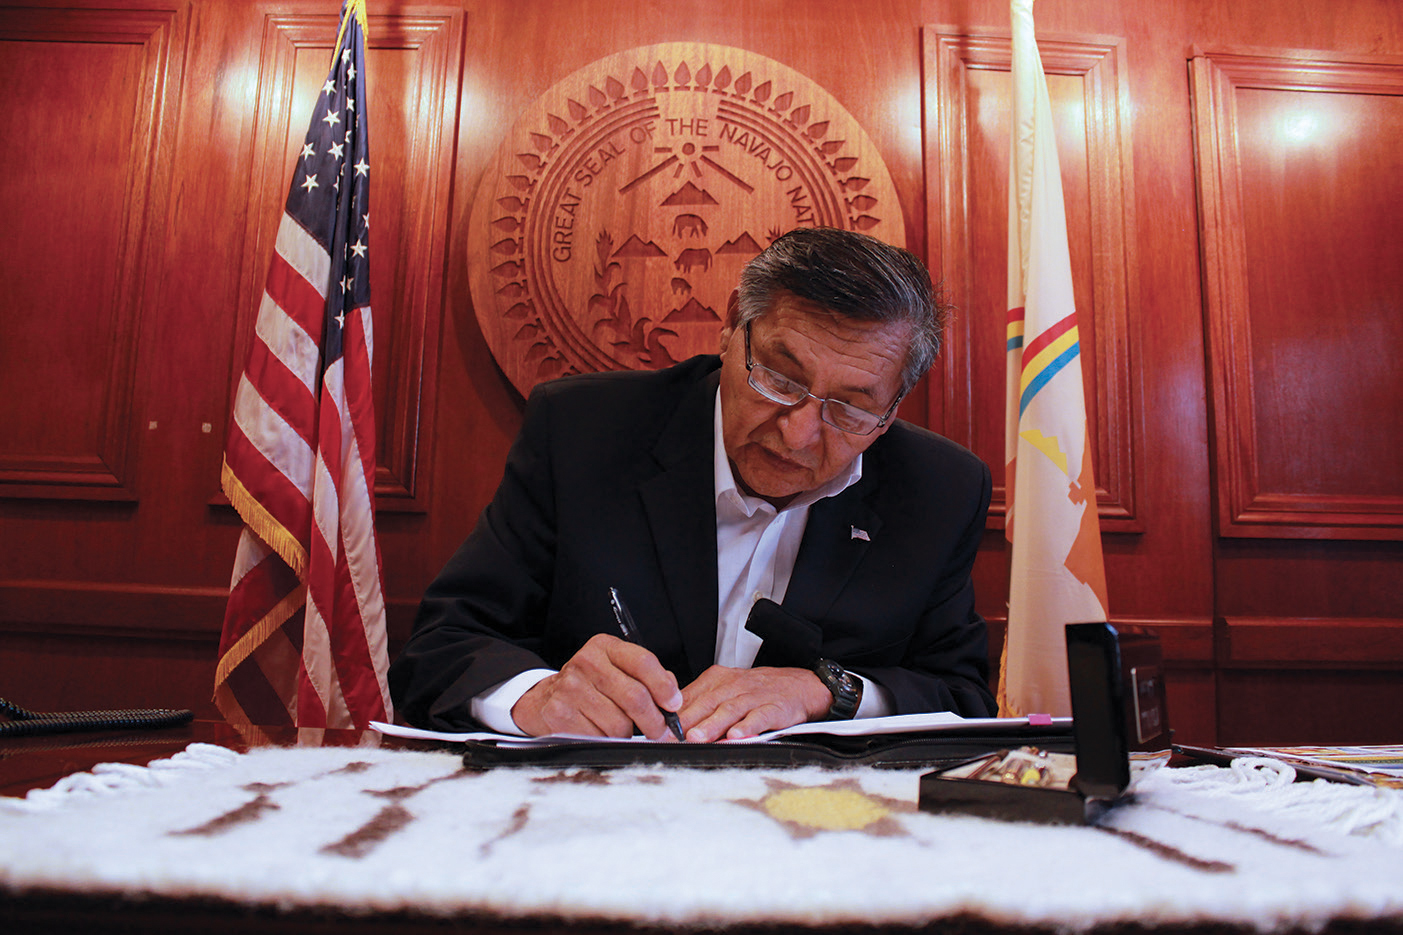 Opinion: Navajo Nation enacts 'sin tax' on unhealthy products